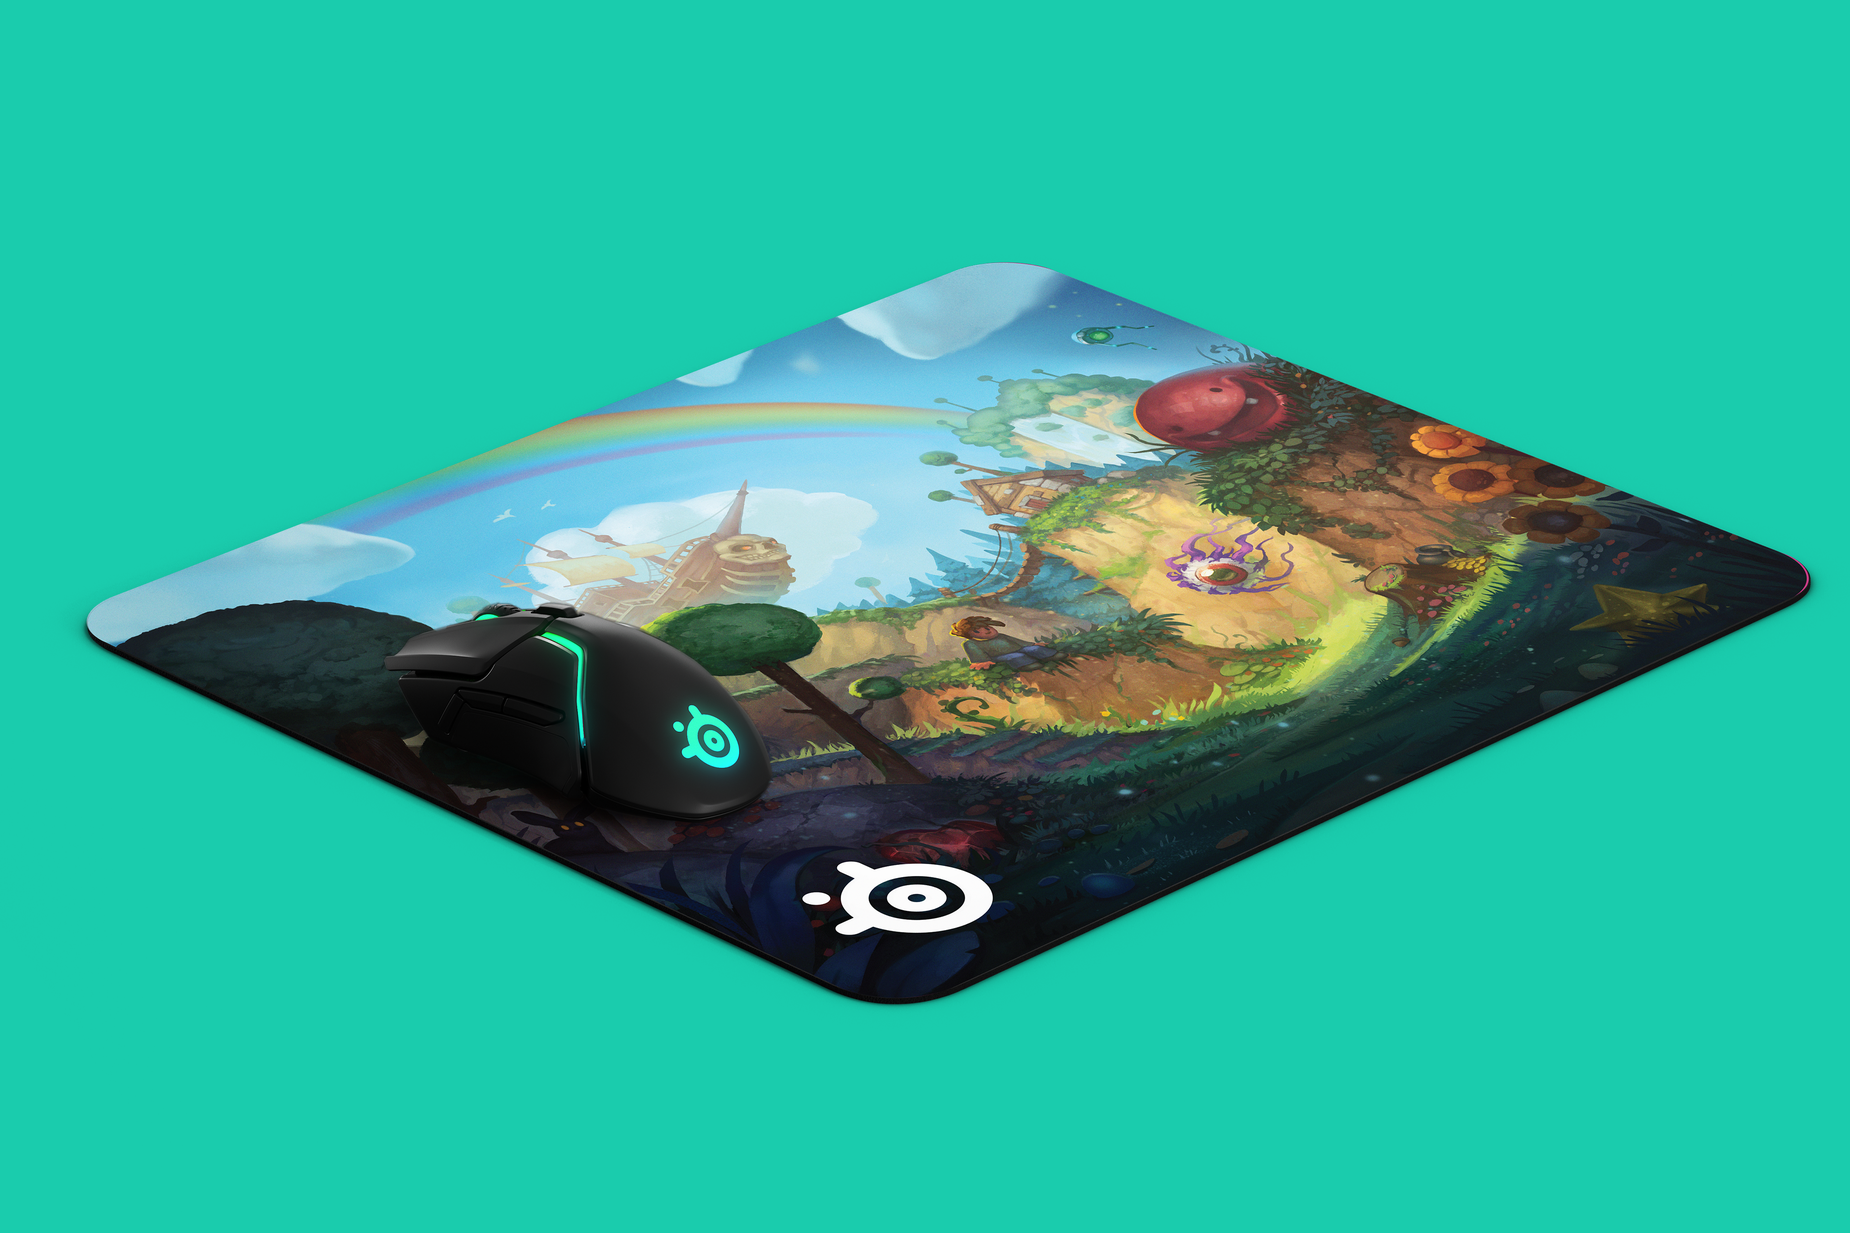 Angled image of mousepad with whimsical creatures in a natural landscape. Computer mouse is placed on mousepad for scale.